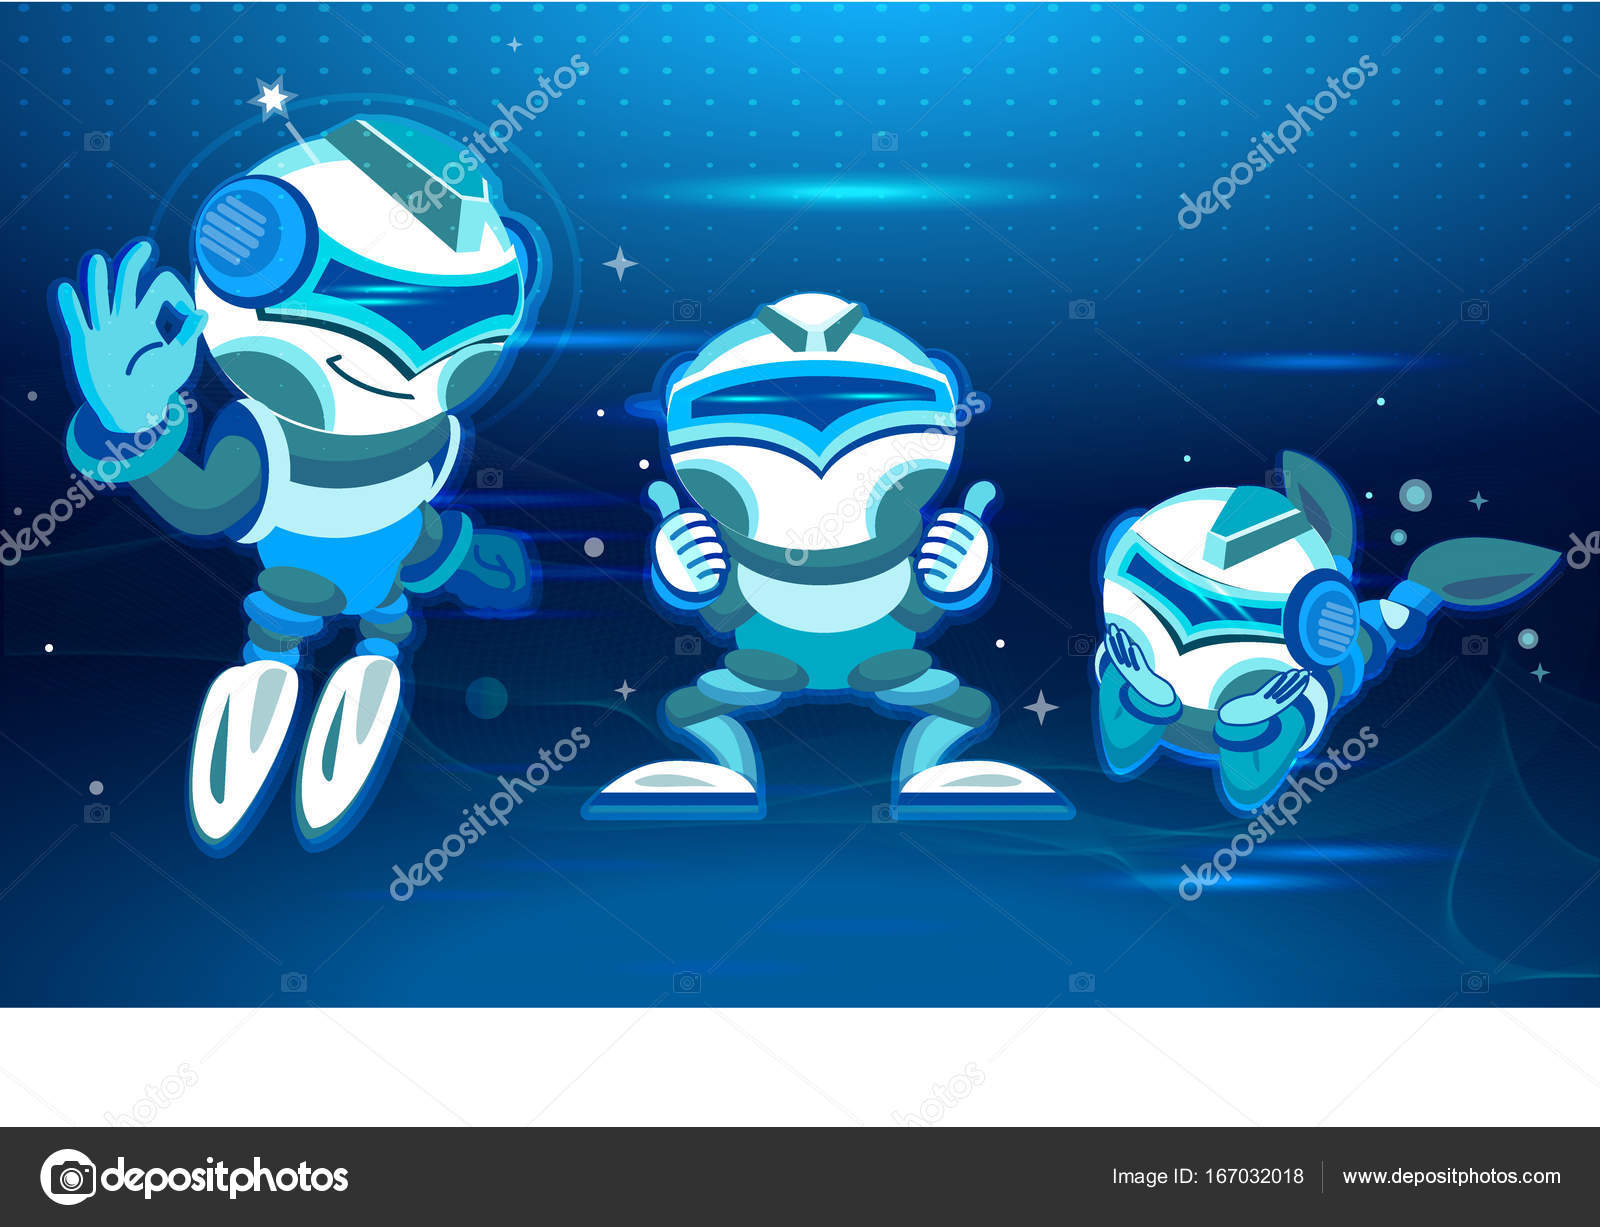 Five Chatbots In Different Poses And Moods. Digital Design In Cartoon  Style. Blue Tone Design Inspirations